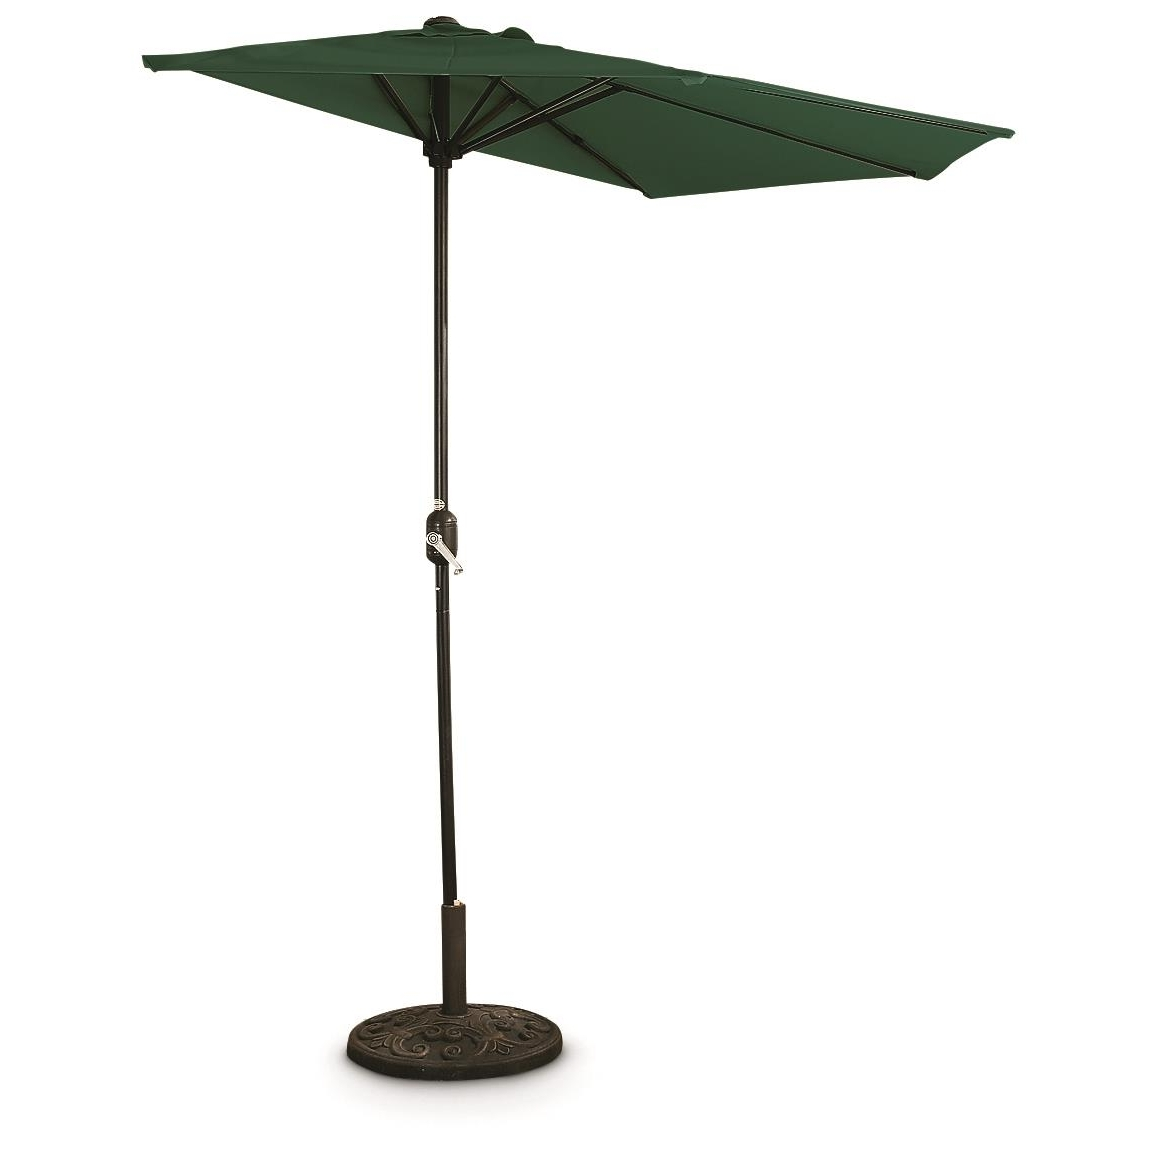 Green Patio Umbrellas In Favorite Castlecreek 8' Half Round Patio Umbrella – 235556, Patio Umbrellas (View 6 of 20)